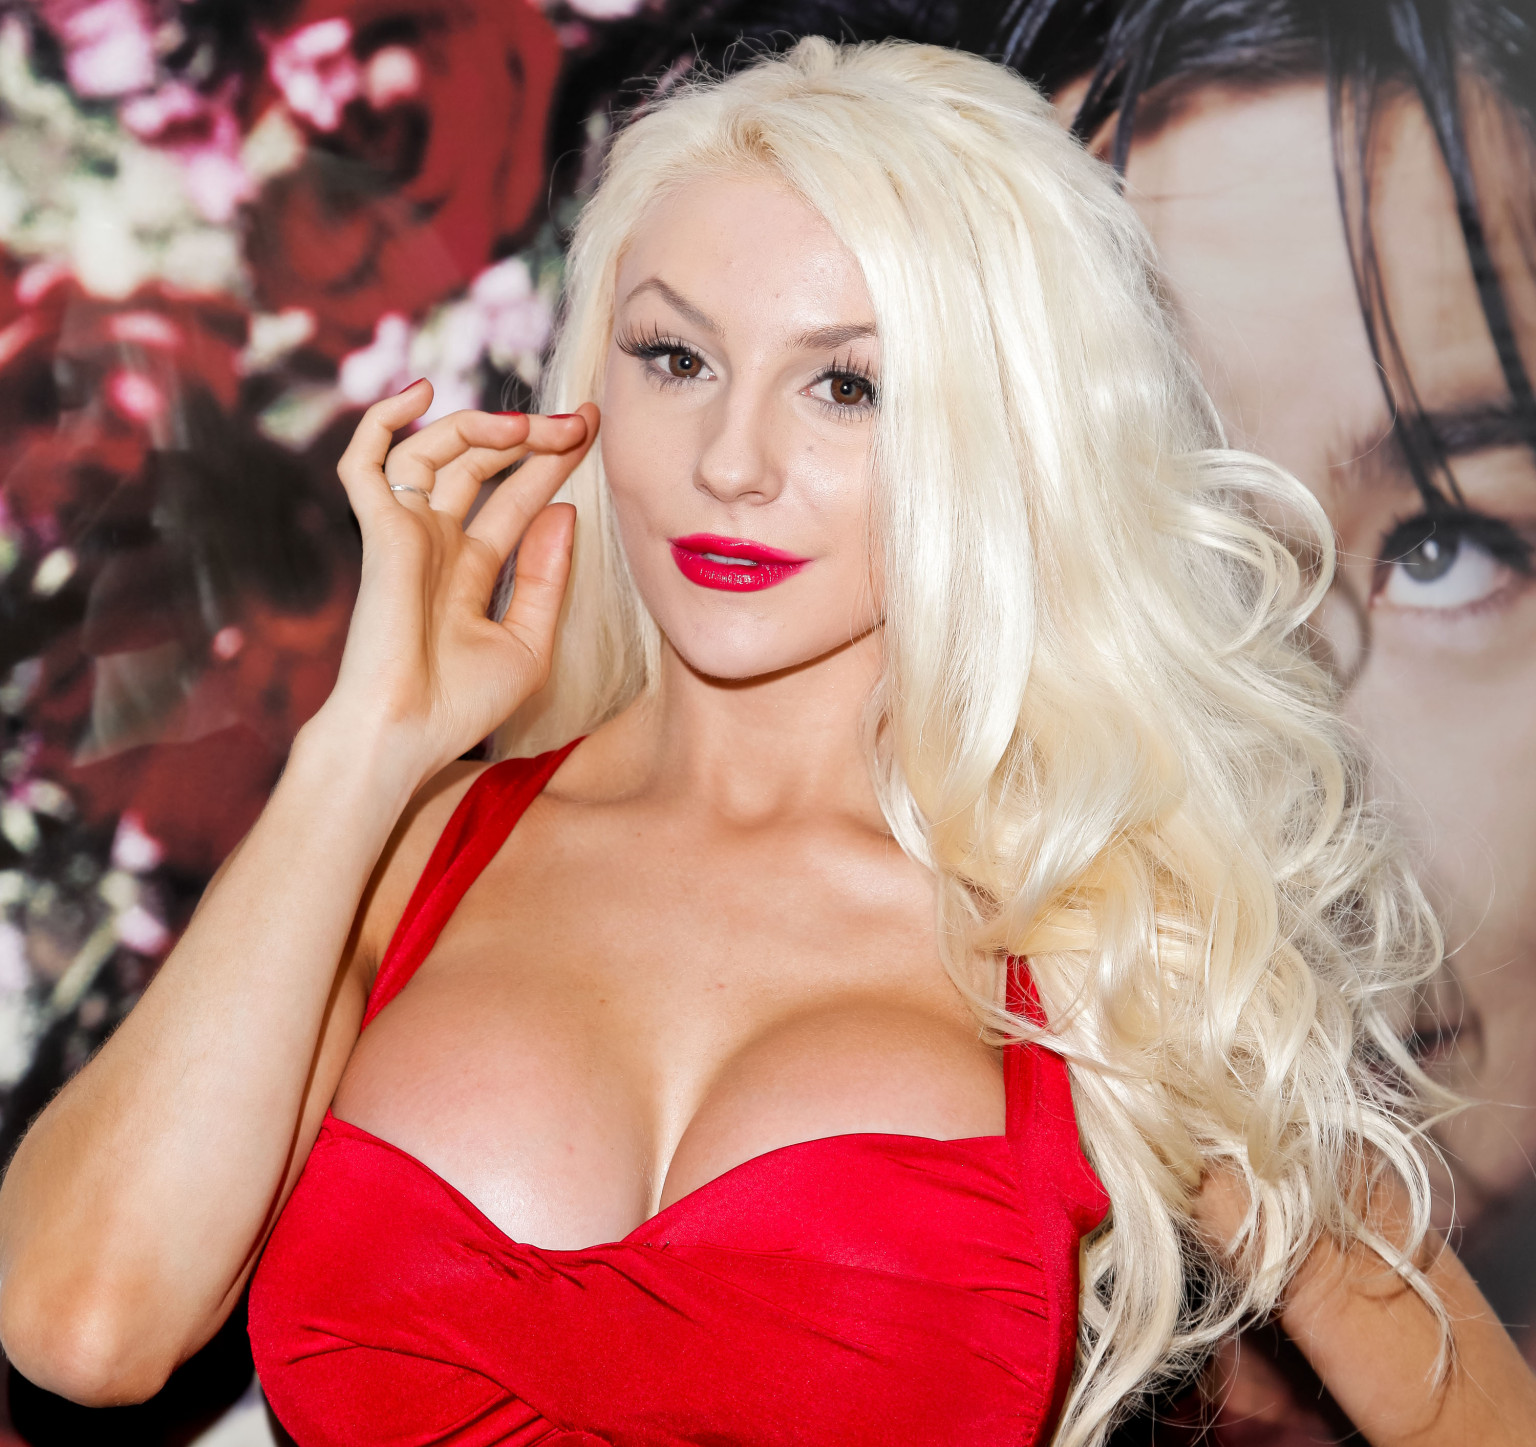 Porm celebrity hairstyles - Courtney Stodden S Porn Deal Would Ve Profited Her 5 Million That Is If She Hadn T Turned It Down Huffpost